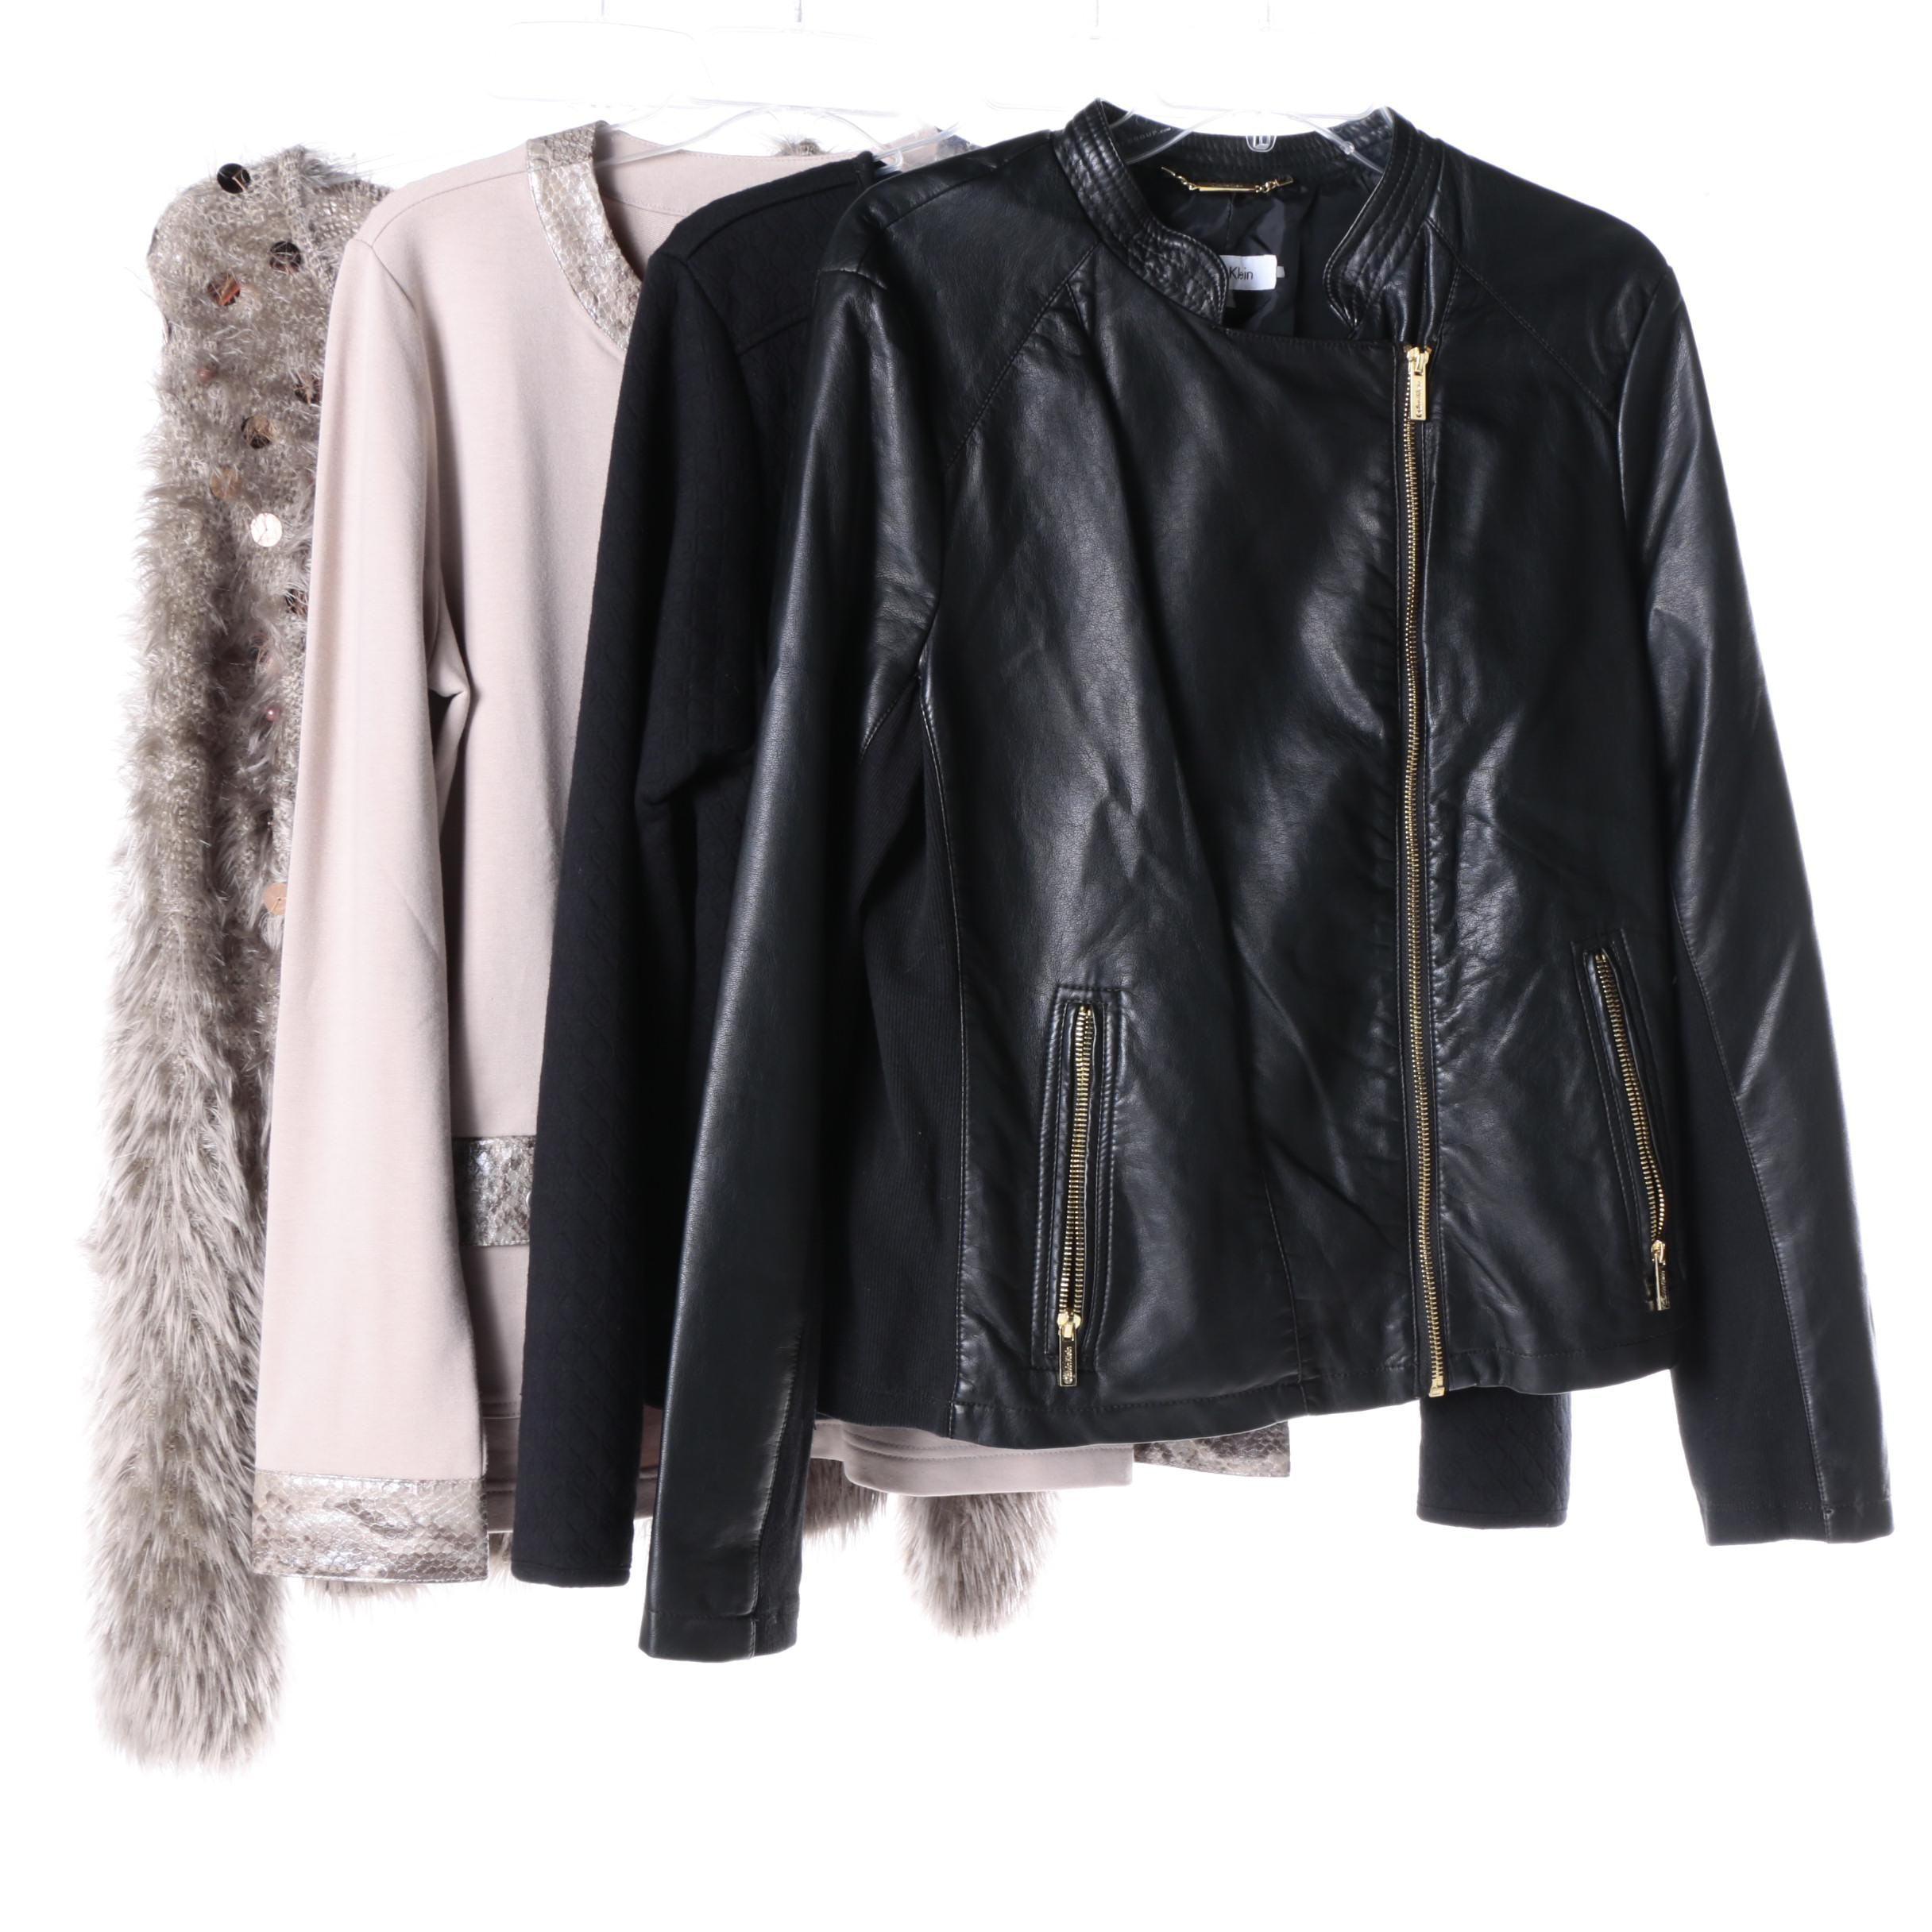 Women's Cardigans and Jackets Including Calvin Klein